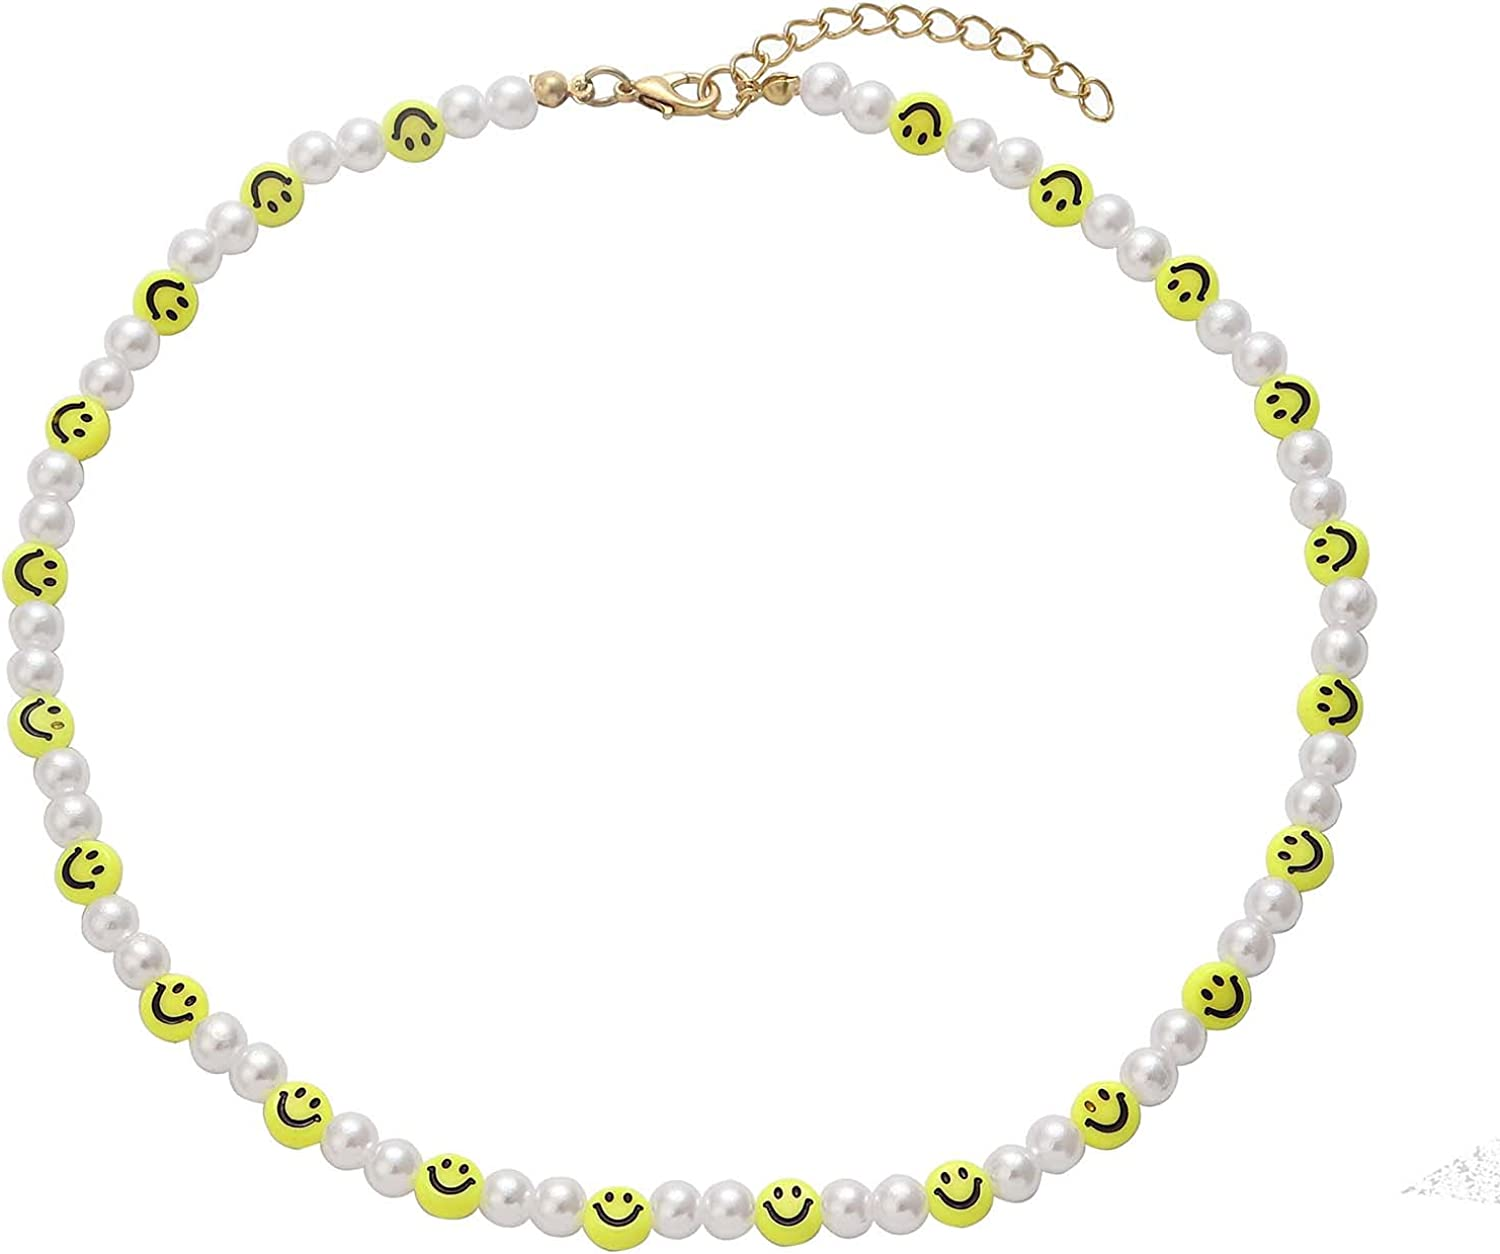 Pearl Choker Necklace for Women Smiley Face Pearl Necklace Colorful Initial Letter Summer Y2K Collar Necklaces Bohemian Bead Pearl Choker Necklace For Teen Girls